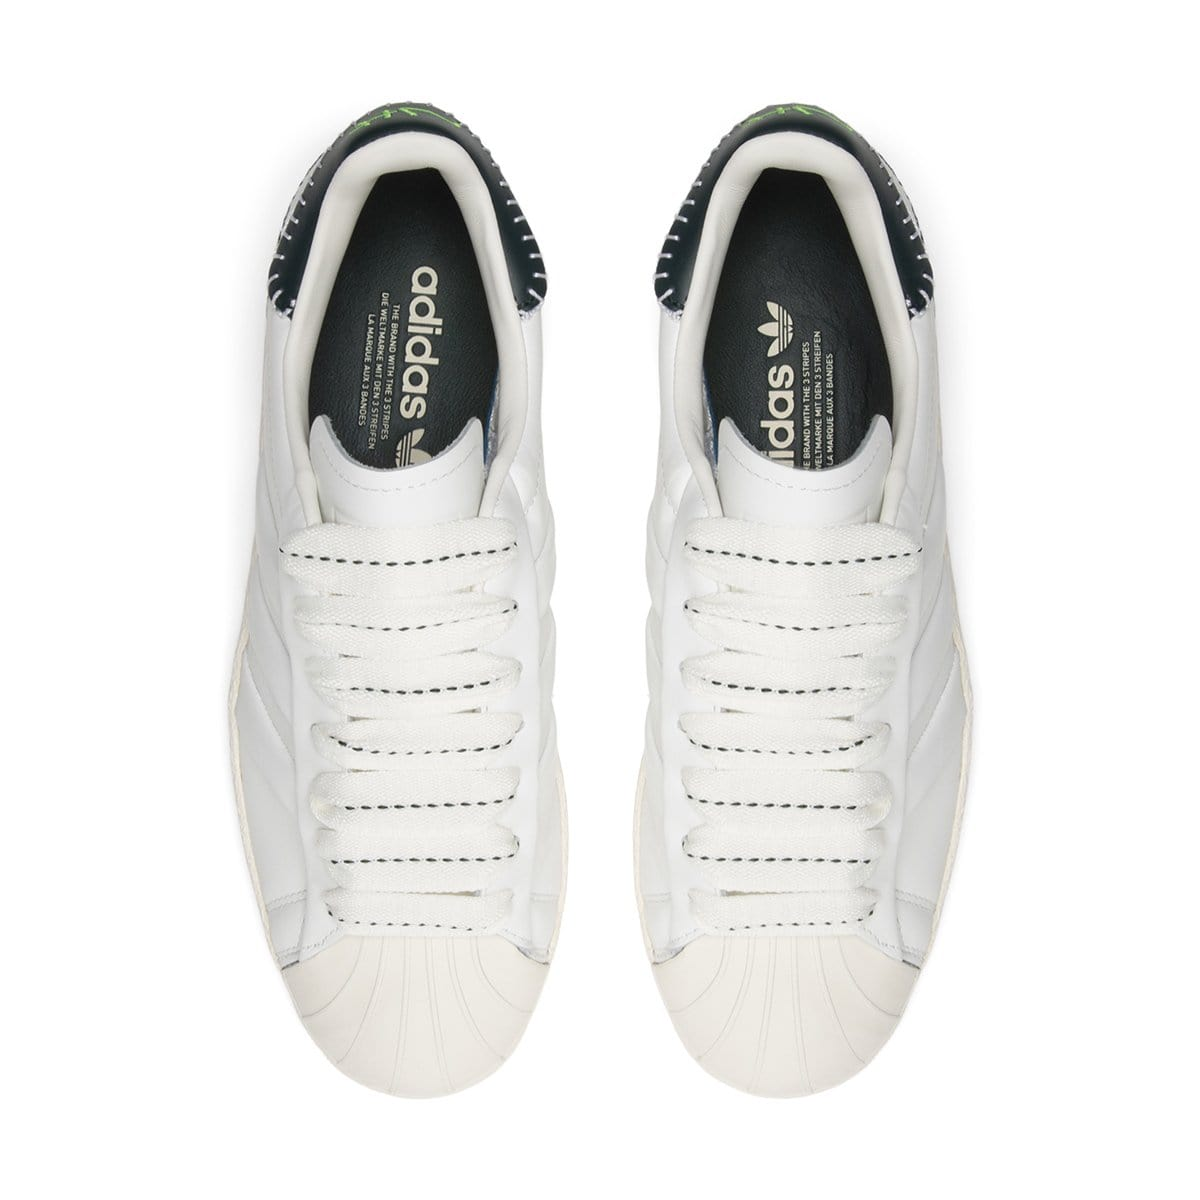 White Adidas Shoes Roblox Template Roblox Adidas Shoe Template Printable Free Large